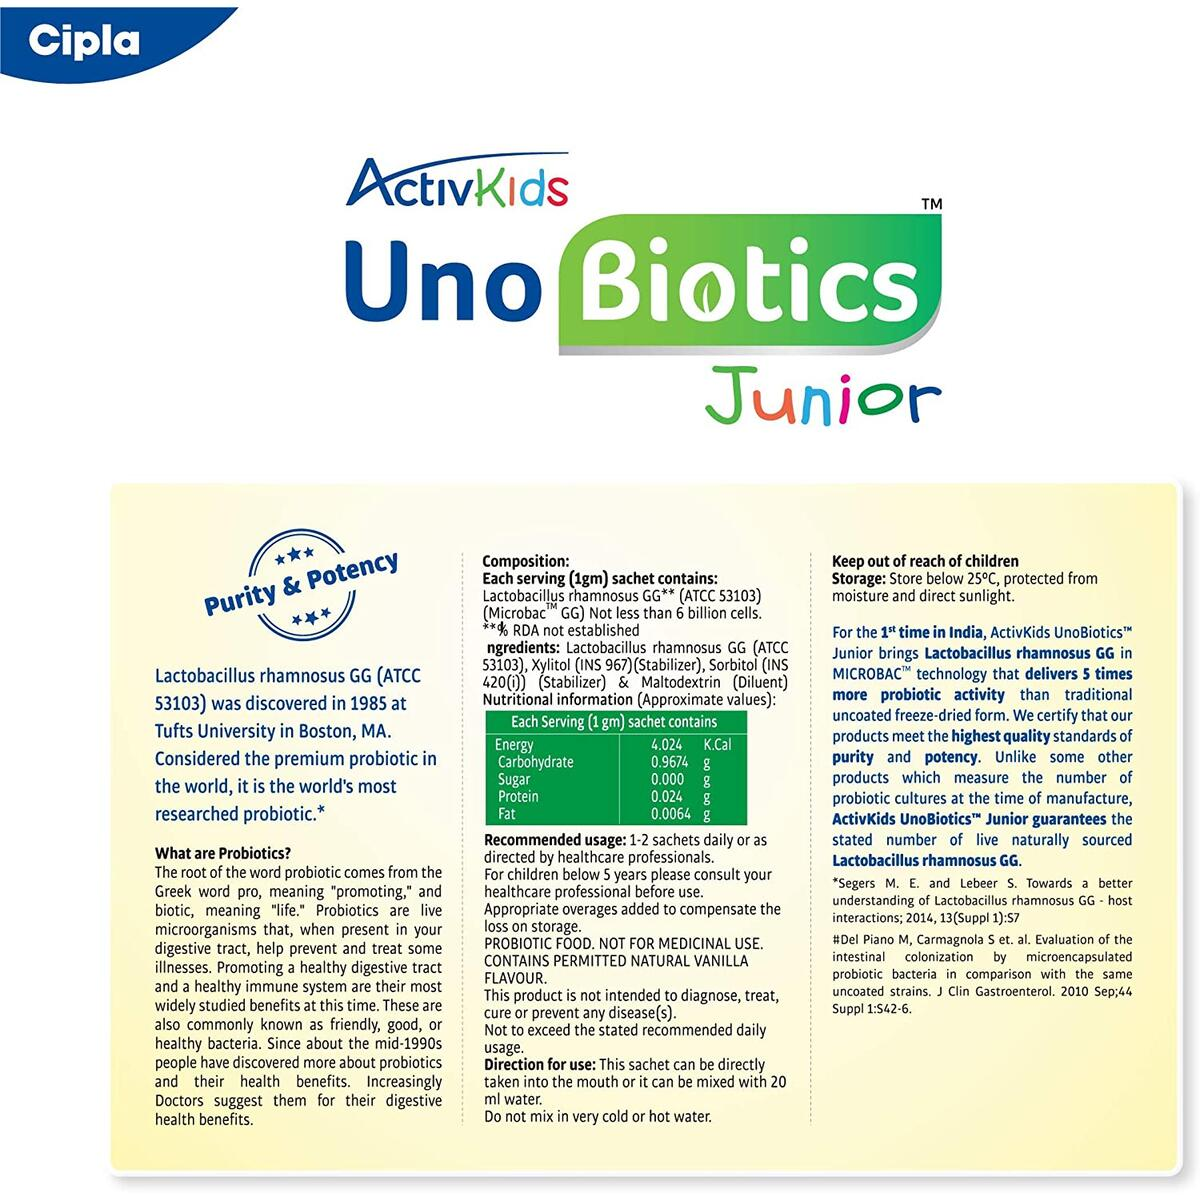 Cipla ActivKids Unobiotics Junior with 5X More Probiotic Activity-Helps Build Immunity & Refills Good Bacteria–Probiotics for Kids 10 Sachet Pack